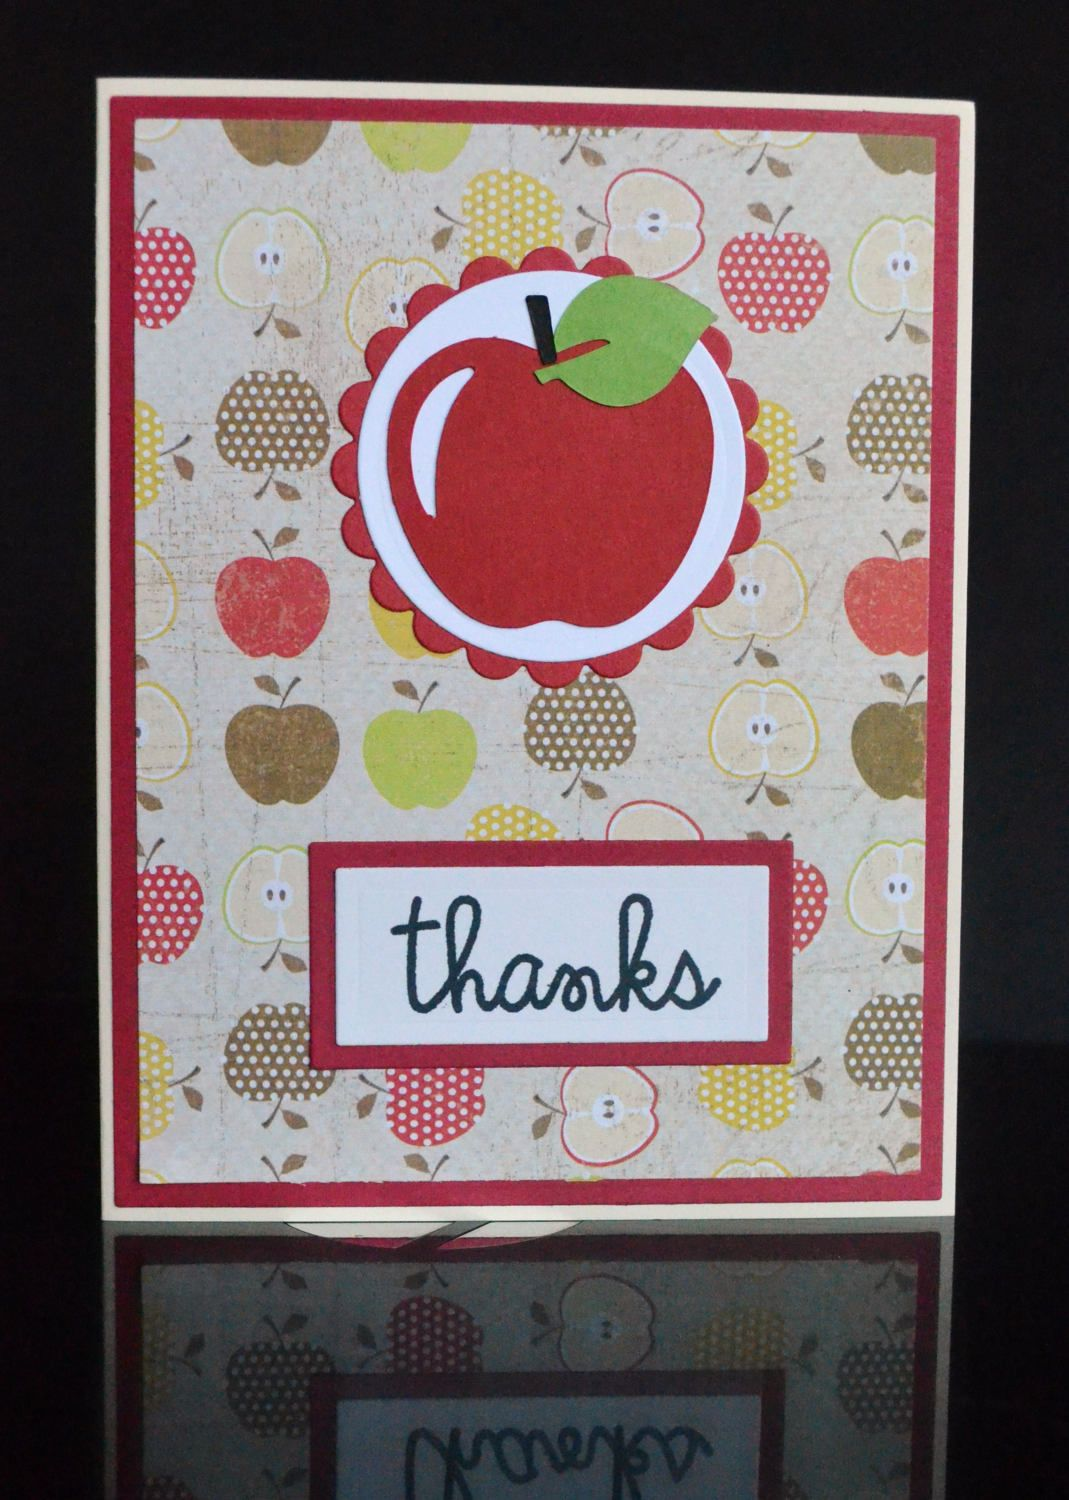 Handmade Thank You Card For Teachers With Apple Theme Handmade